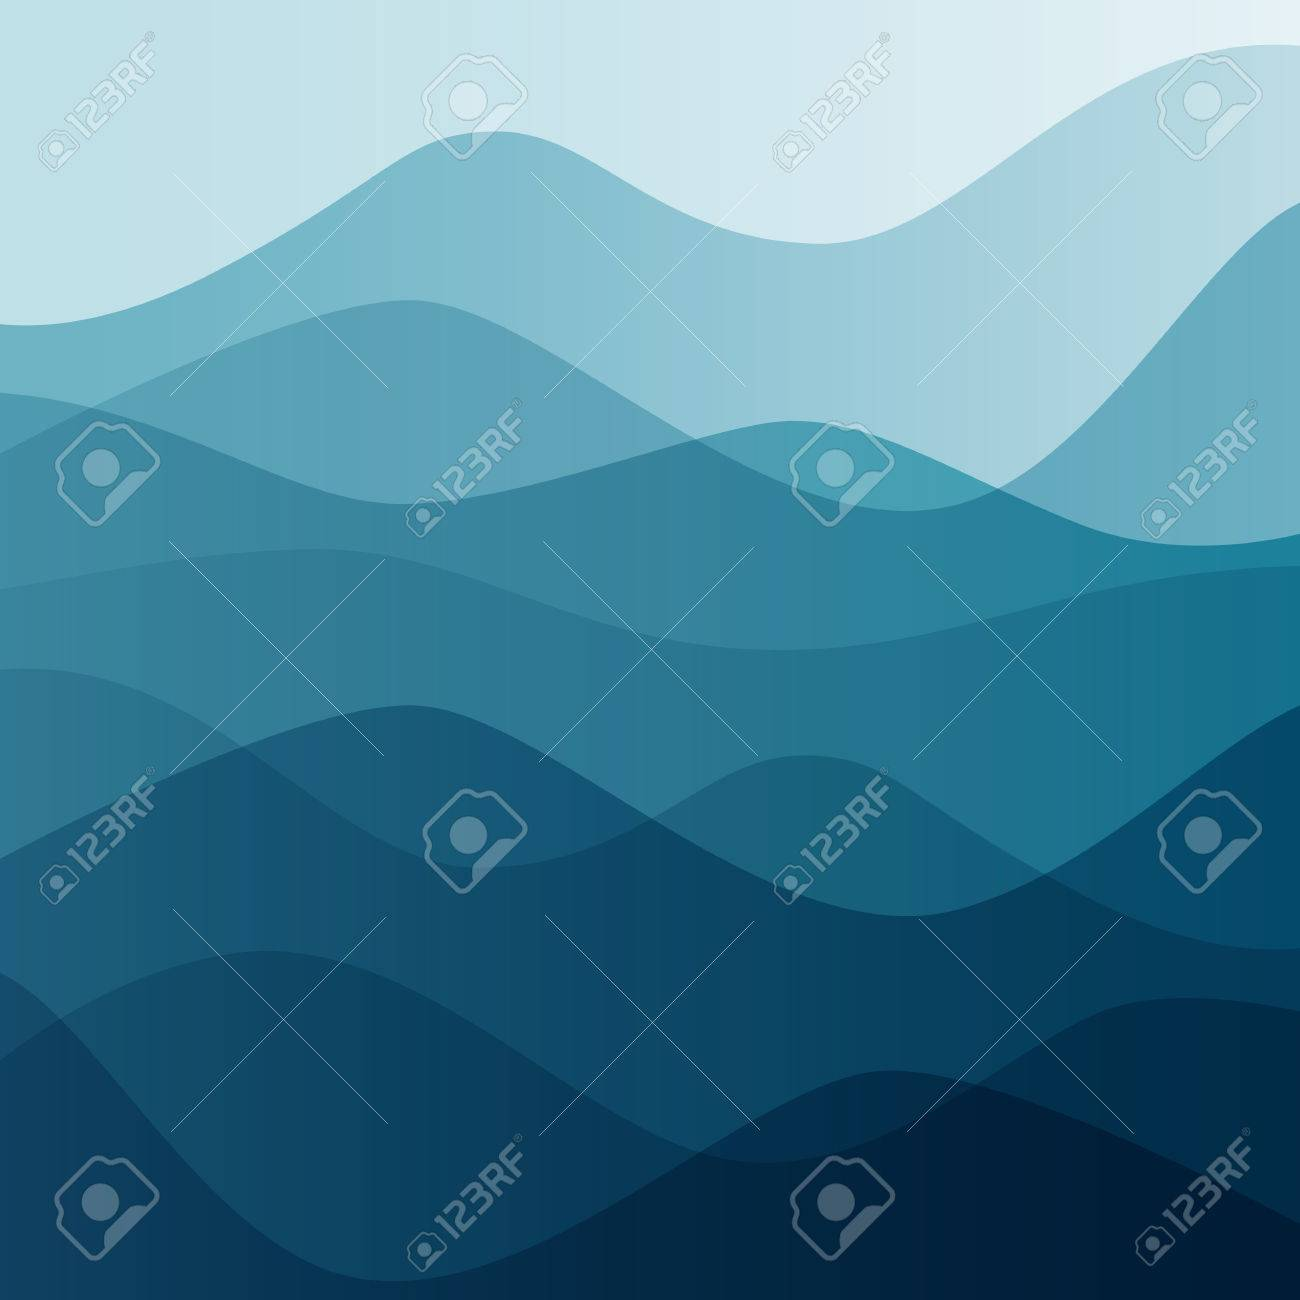 Abstract water nature landscape. Decorative square background. Vector graphic template. - 46085308